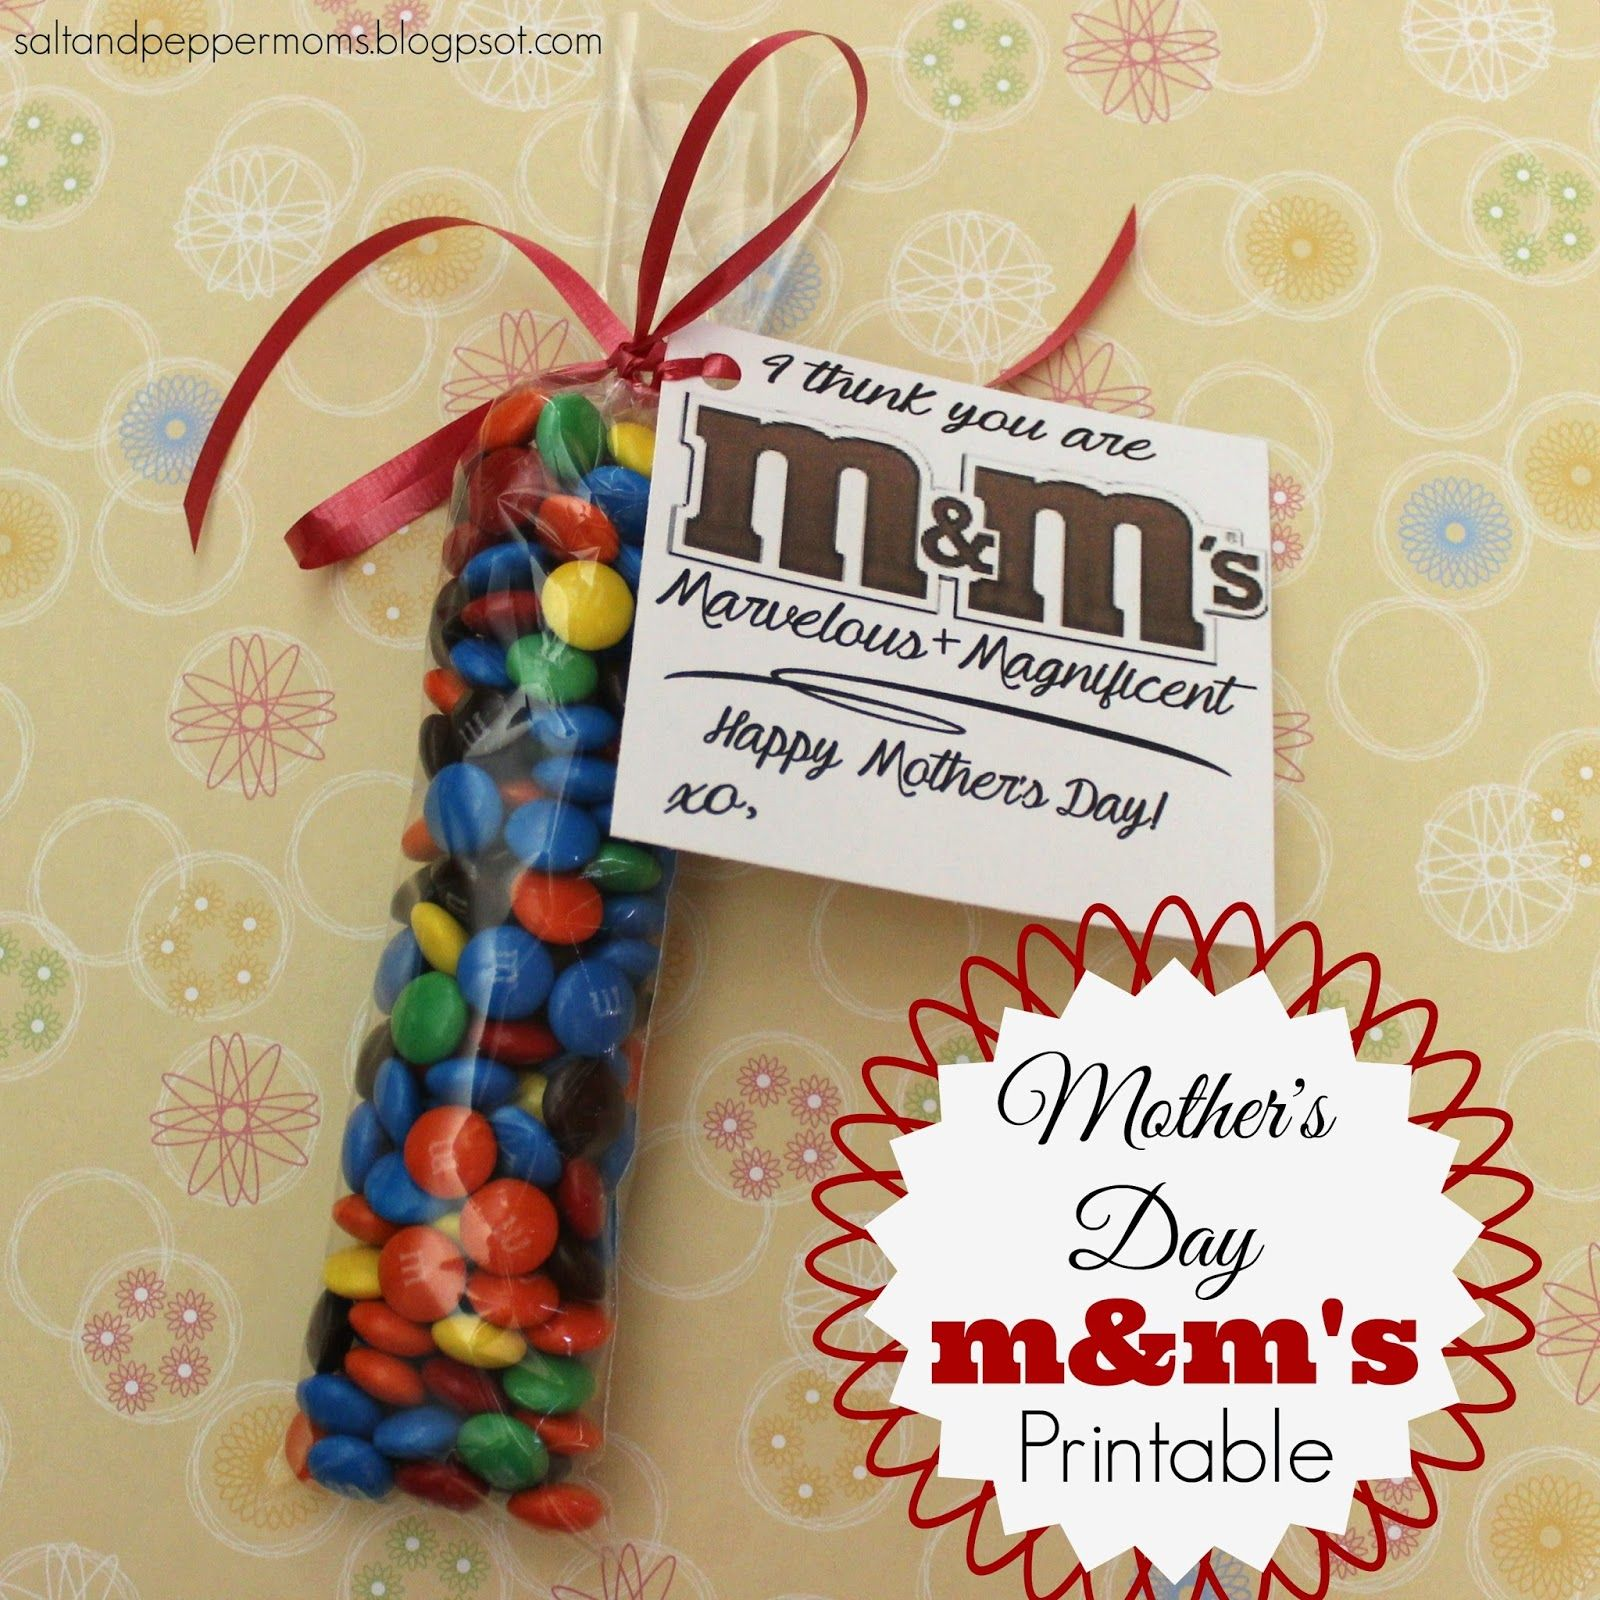 salt and pepper moms: free mother's day m&m's printable tag | gift